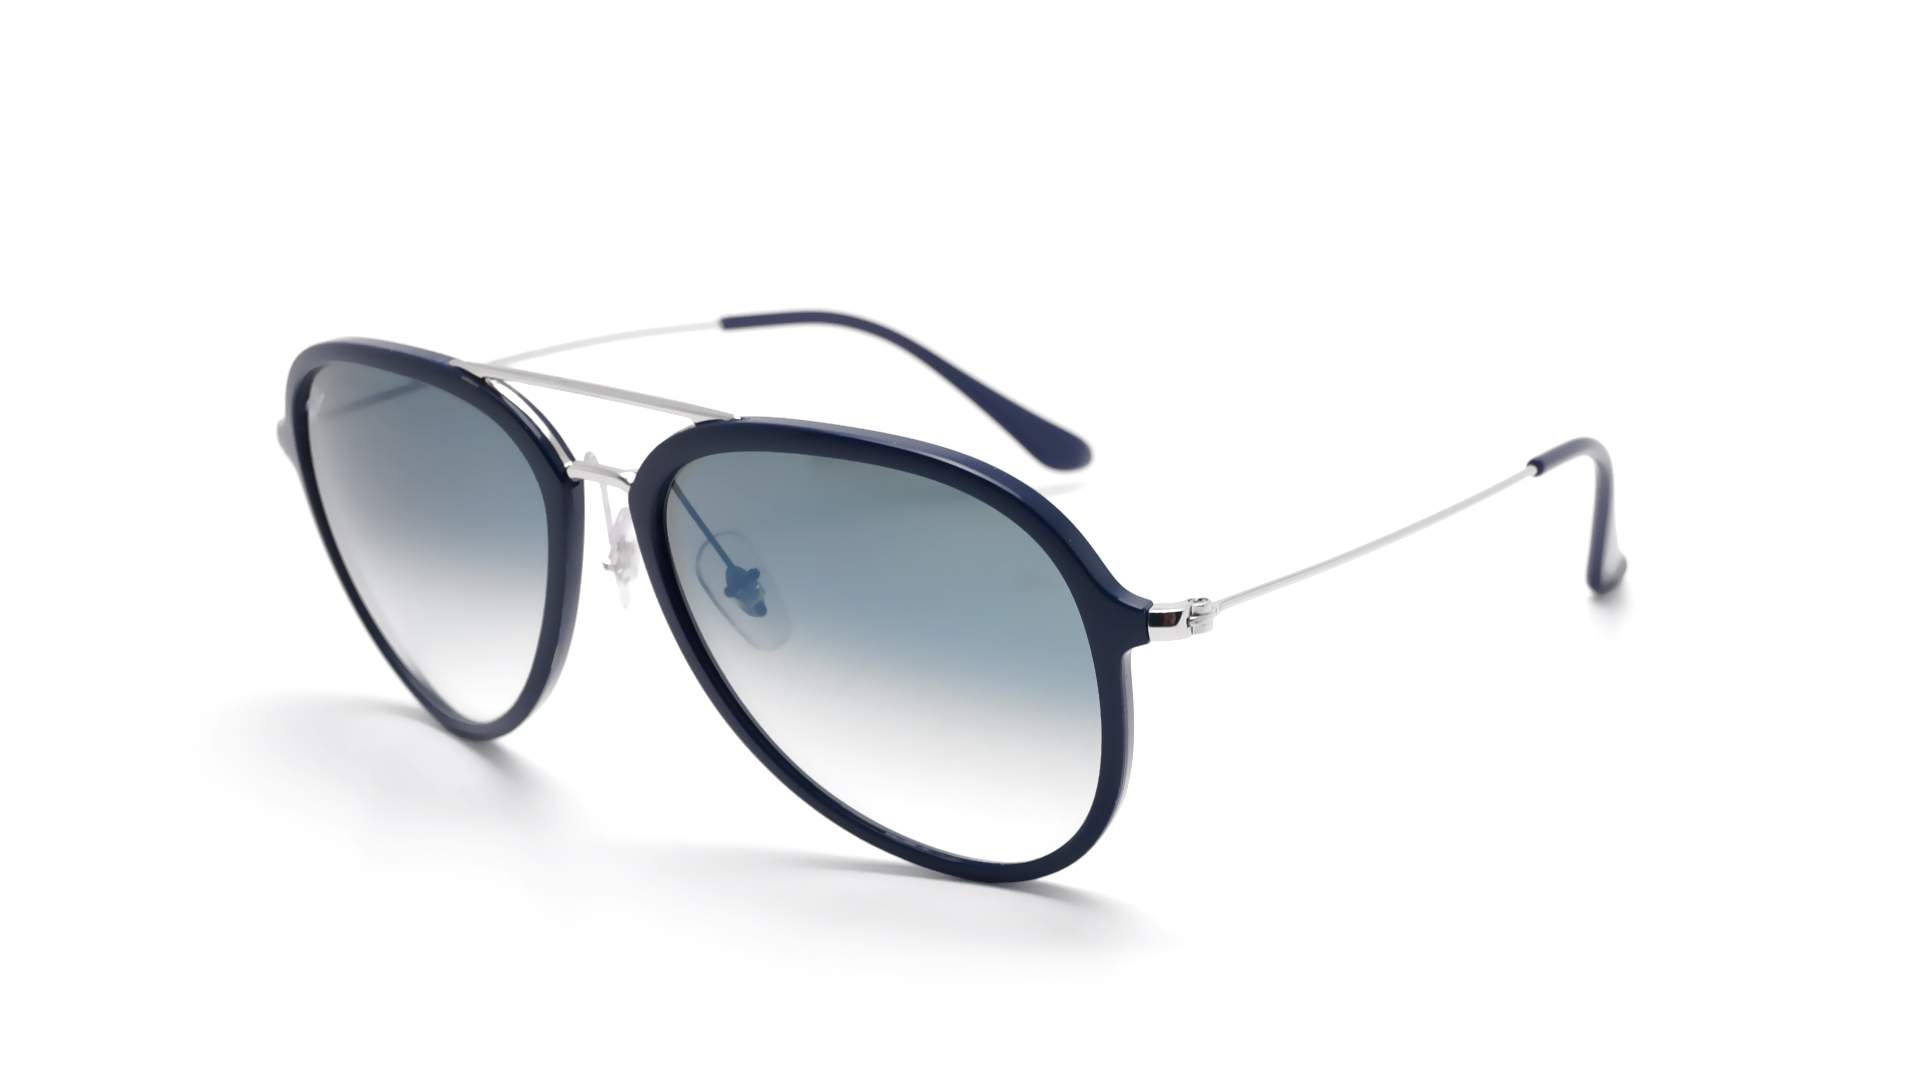 3ce3c05a13c Sunglasses Ray-Ban RB4298 6334 3A 57-17 Blue Large Gradient Mirror